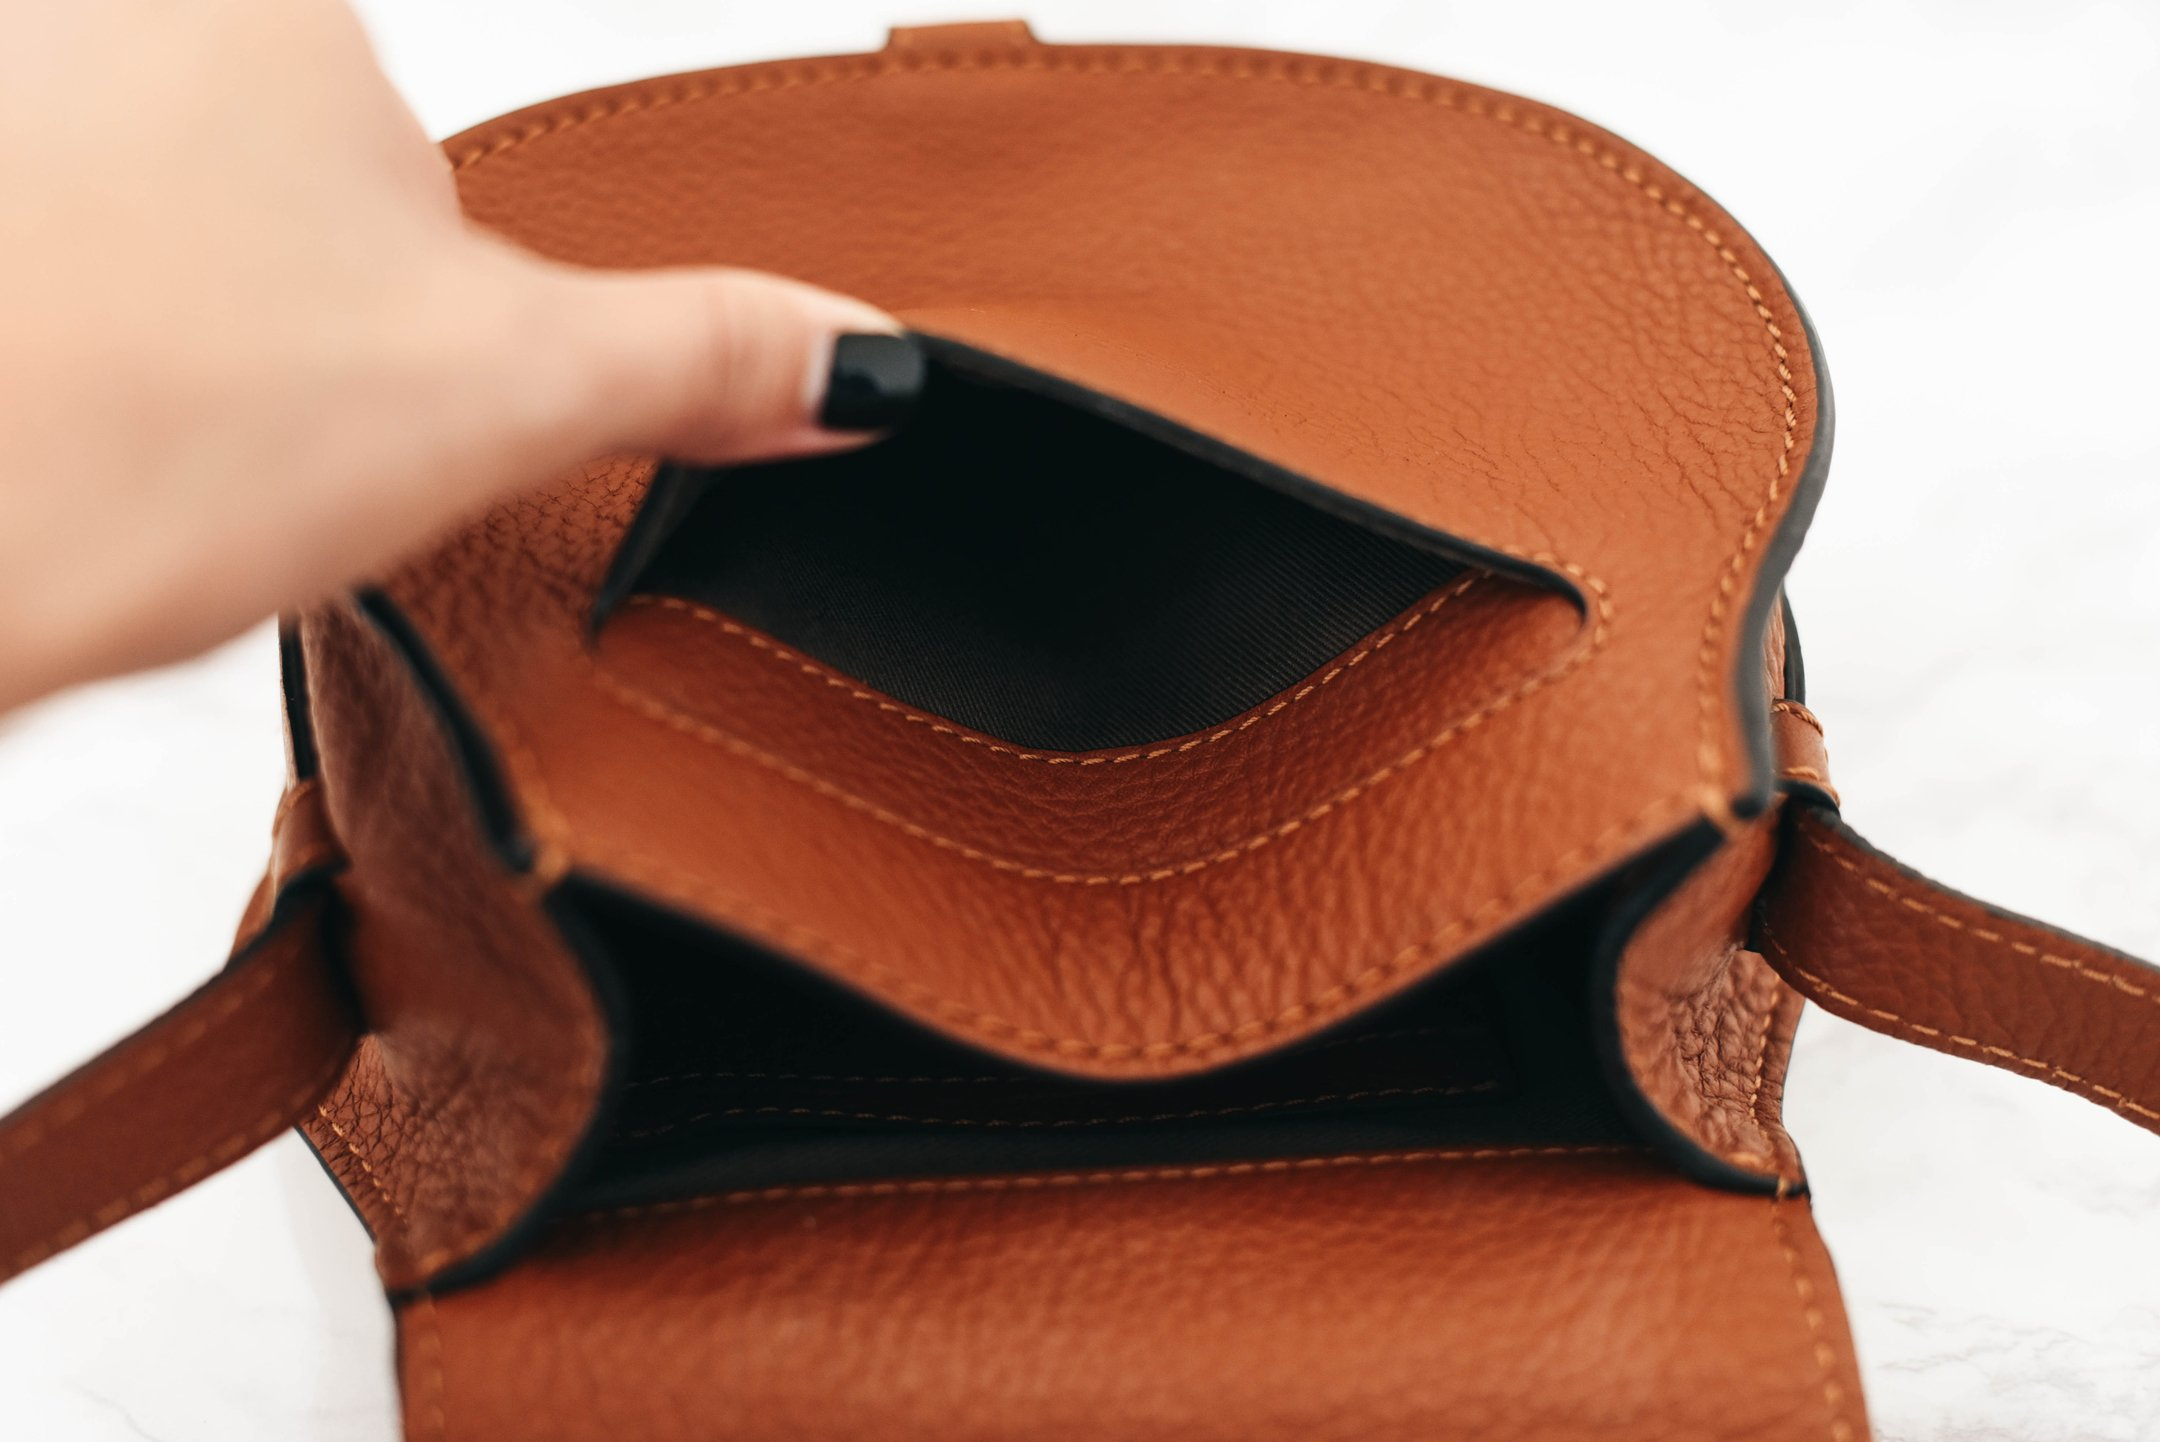 chloe-small-marcie-leather-crossbody-bag-review